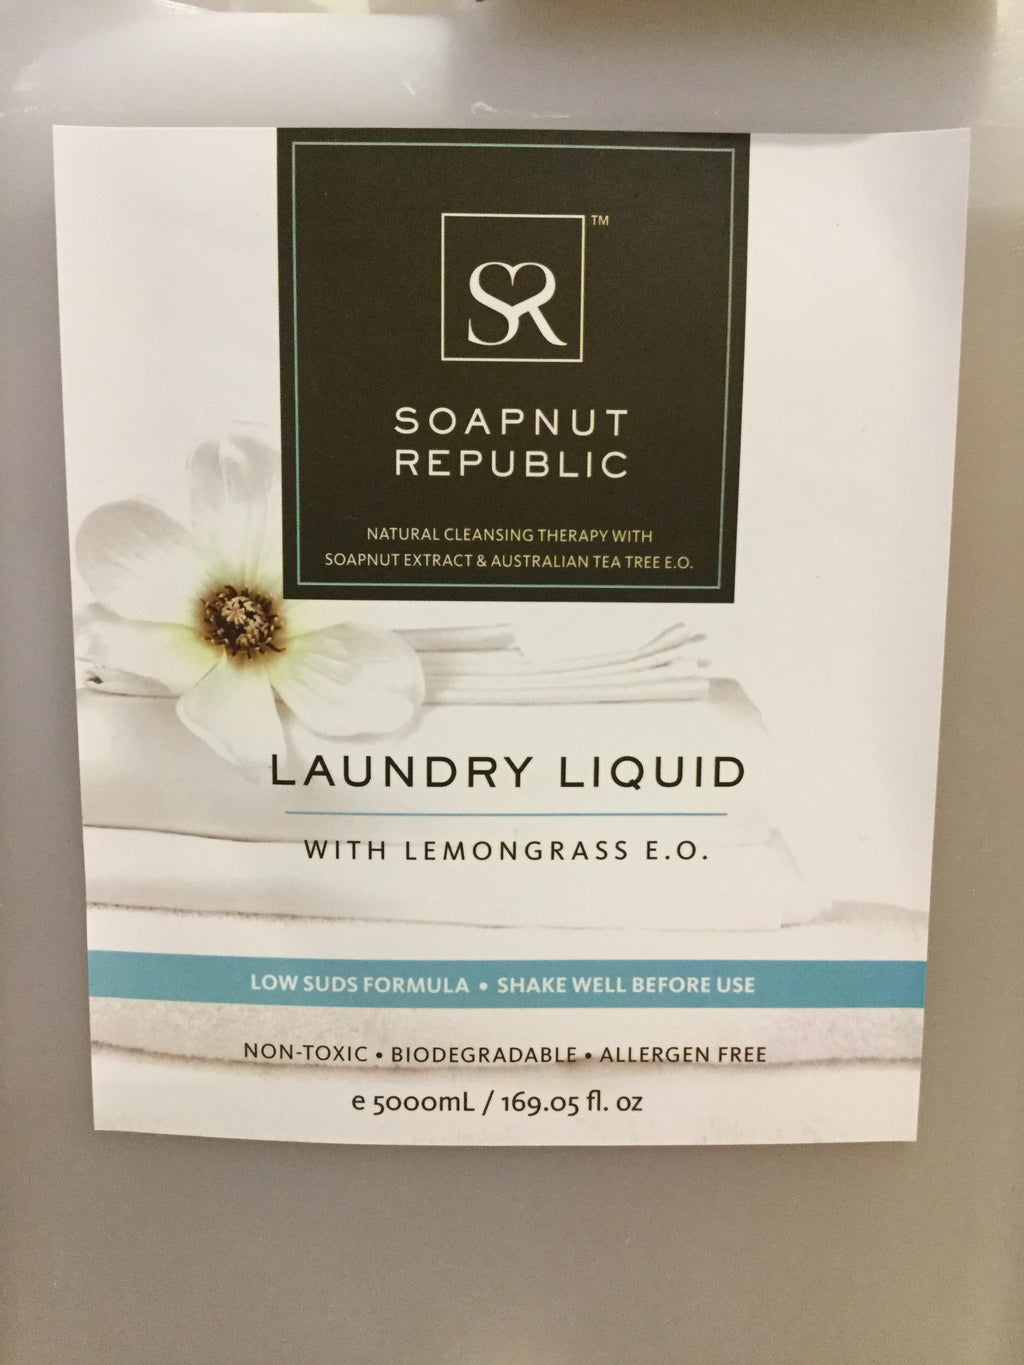 Soapnut Republic (Bulk) Laundry Liquid with Lemongrass E.O.